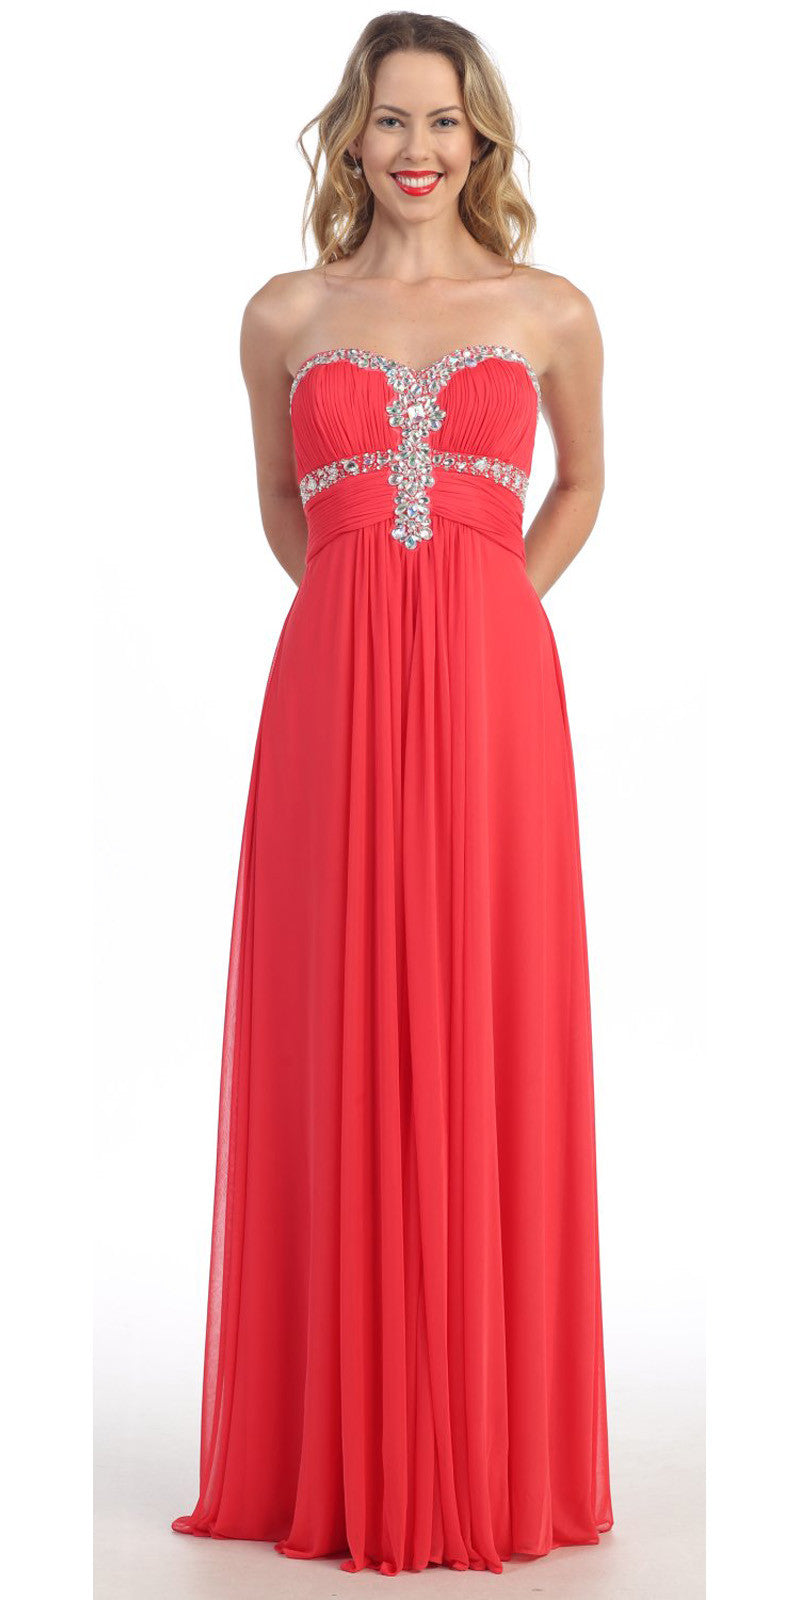 Coral Formal Gown Chiffon Long Empire Waist Rhinestone Bodice